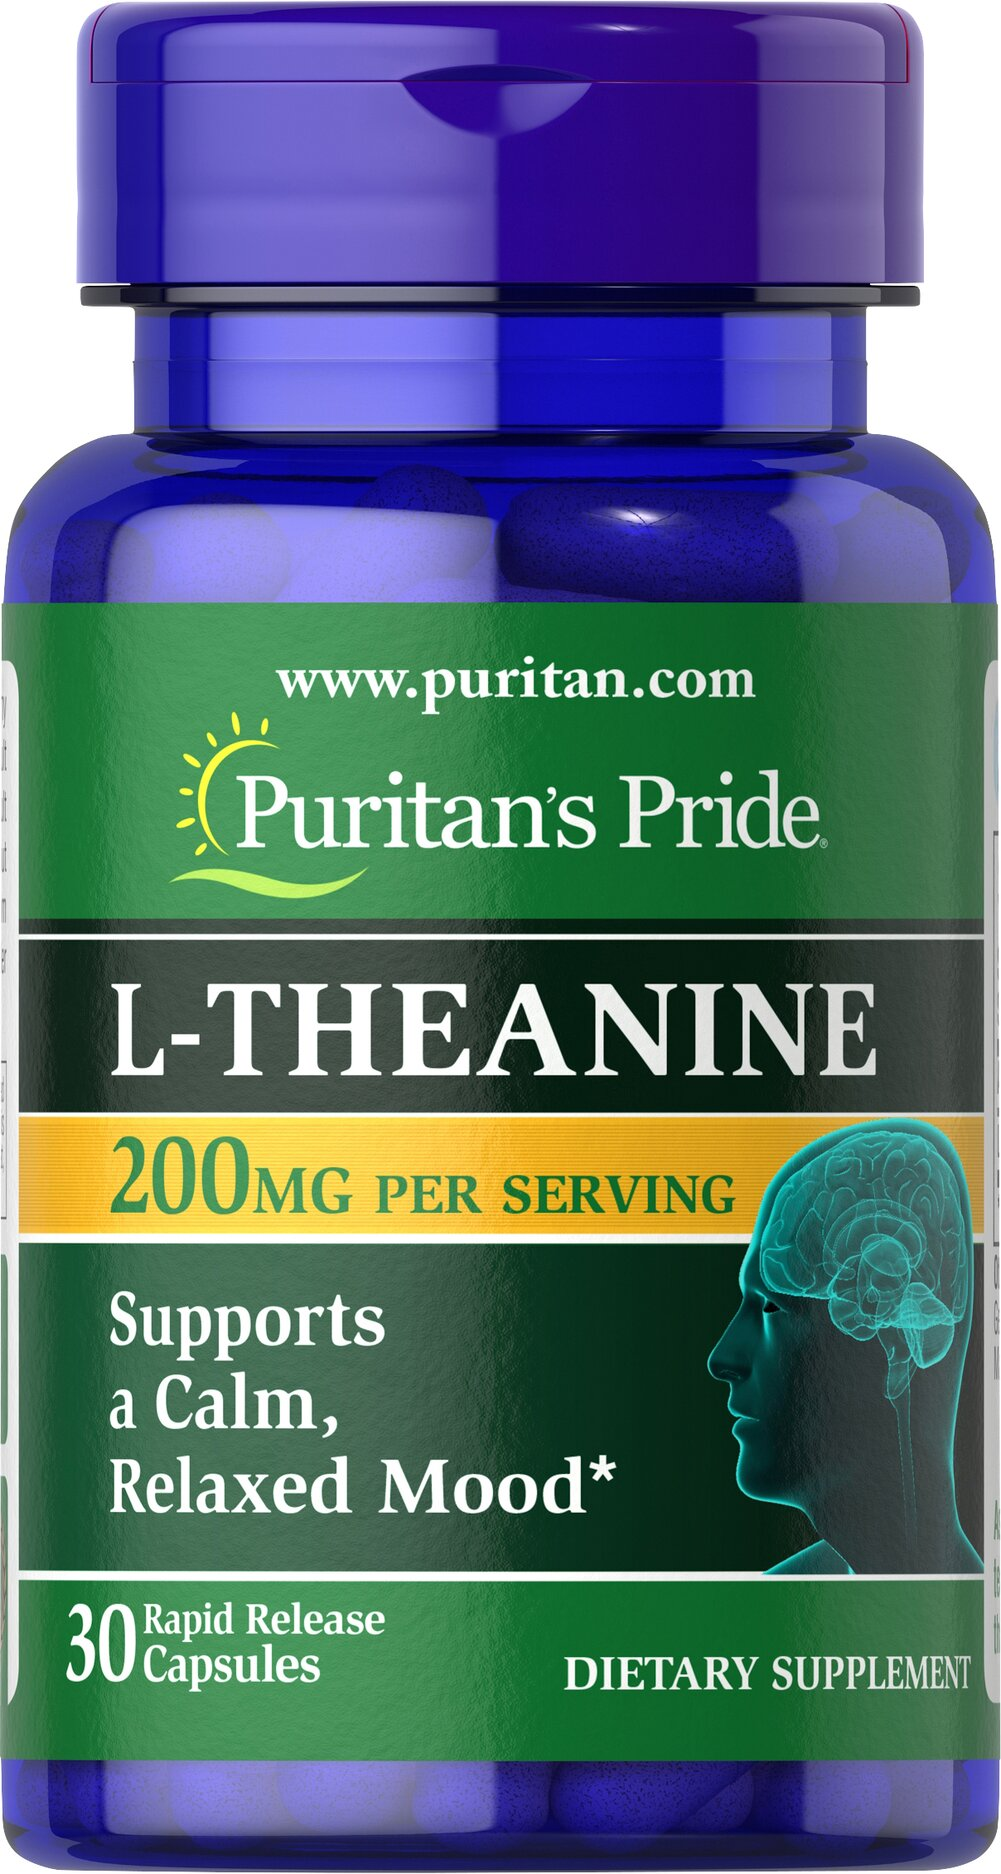 L-Theanine 200 mg <p>A close relative of Glutamate, studies indicate that L-Theanine interacts with the neurotransmitter, GABA (gammaminobutyrate).** GABA, known for its importance in nervous system functioning, works with the mood centers of the brain.** Studies in Japan show that L-Theanine helps support the body's ability to deal with PMS and occasional, everyday anxiety.**</p> 30 Capsules 200 mg $10.29